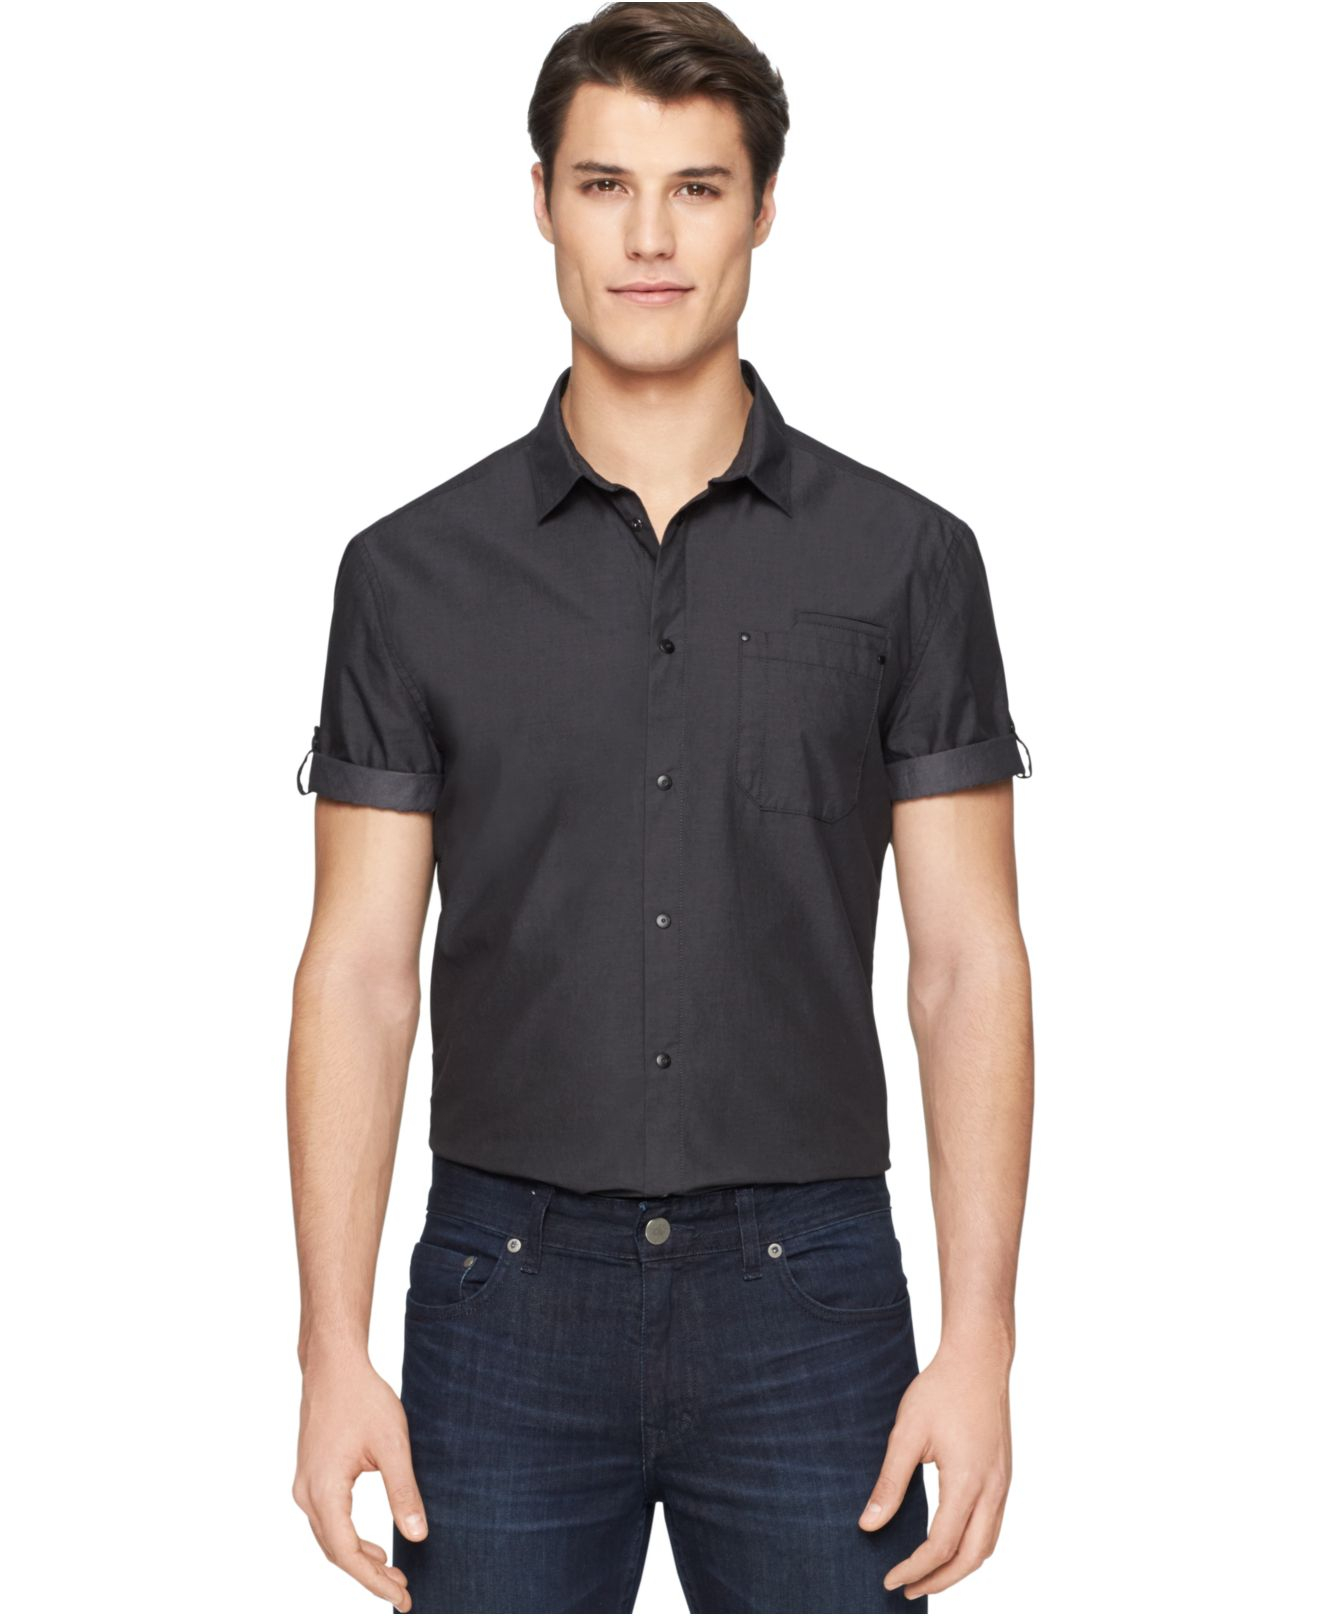 calvin klein jeans chambray utility shirt in black for men. Black Bedroom Furniture Sets. Home Design Ideas